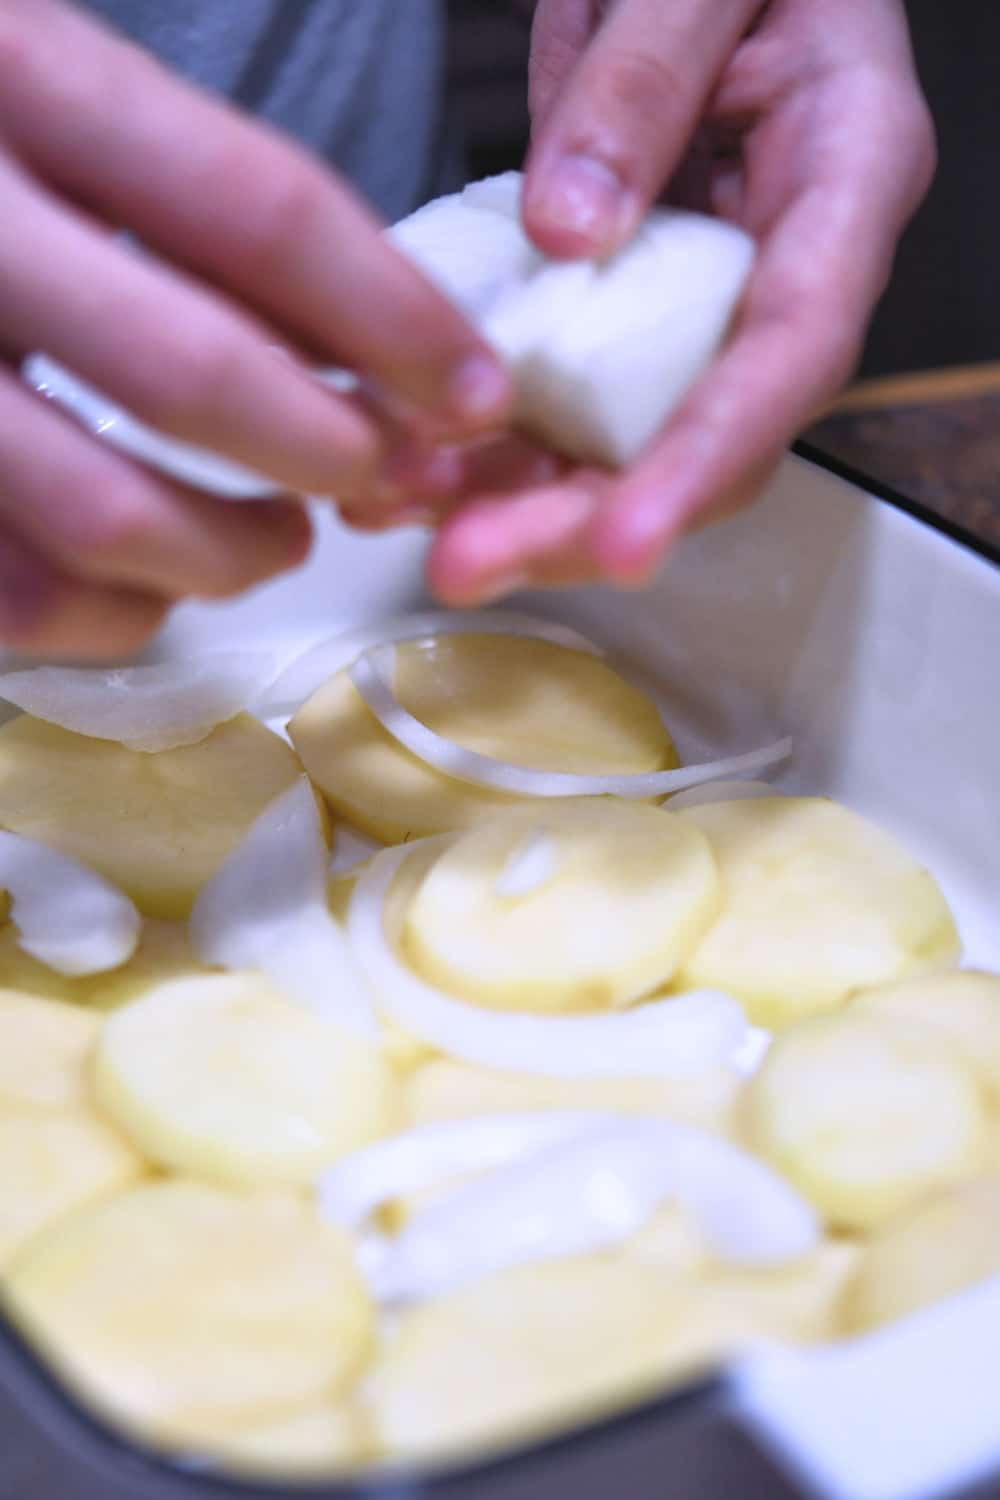 layering the sliced potatoes in the baking pan with a little bit of onion slivers